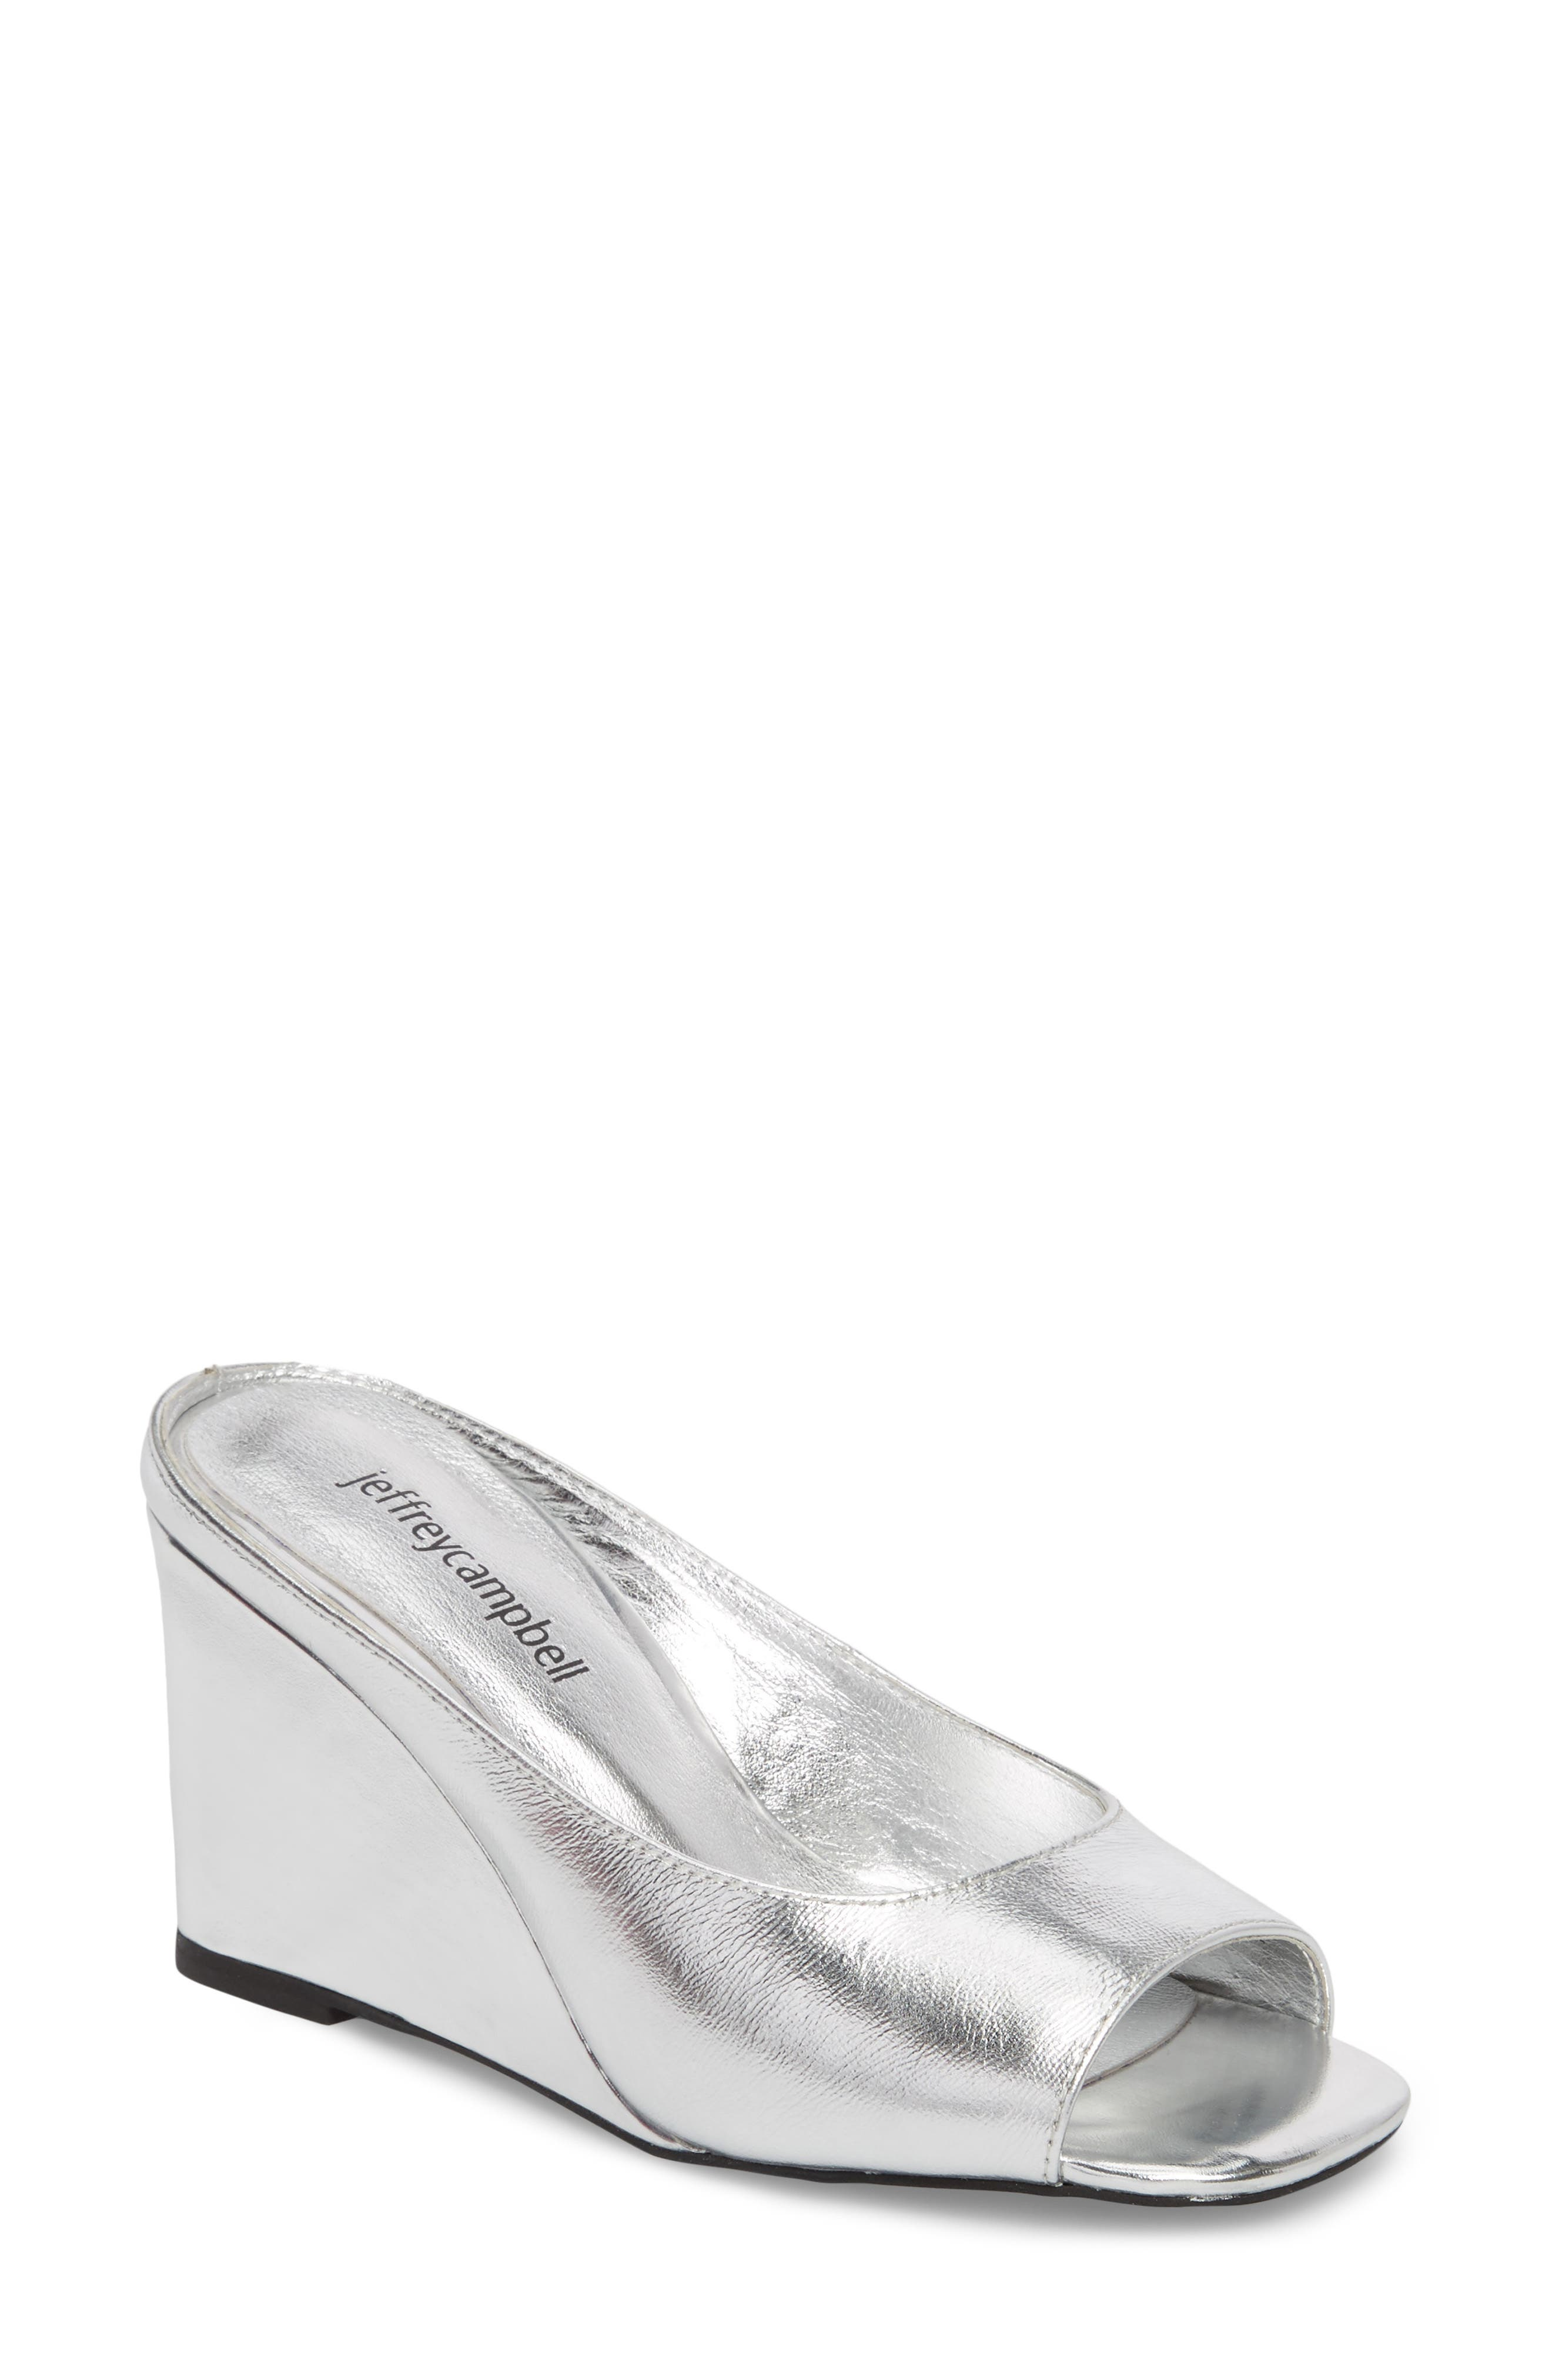 Generous Wedge Sandal,                         Main,                         color, Silver Leather